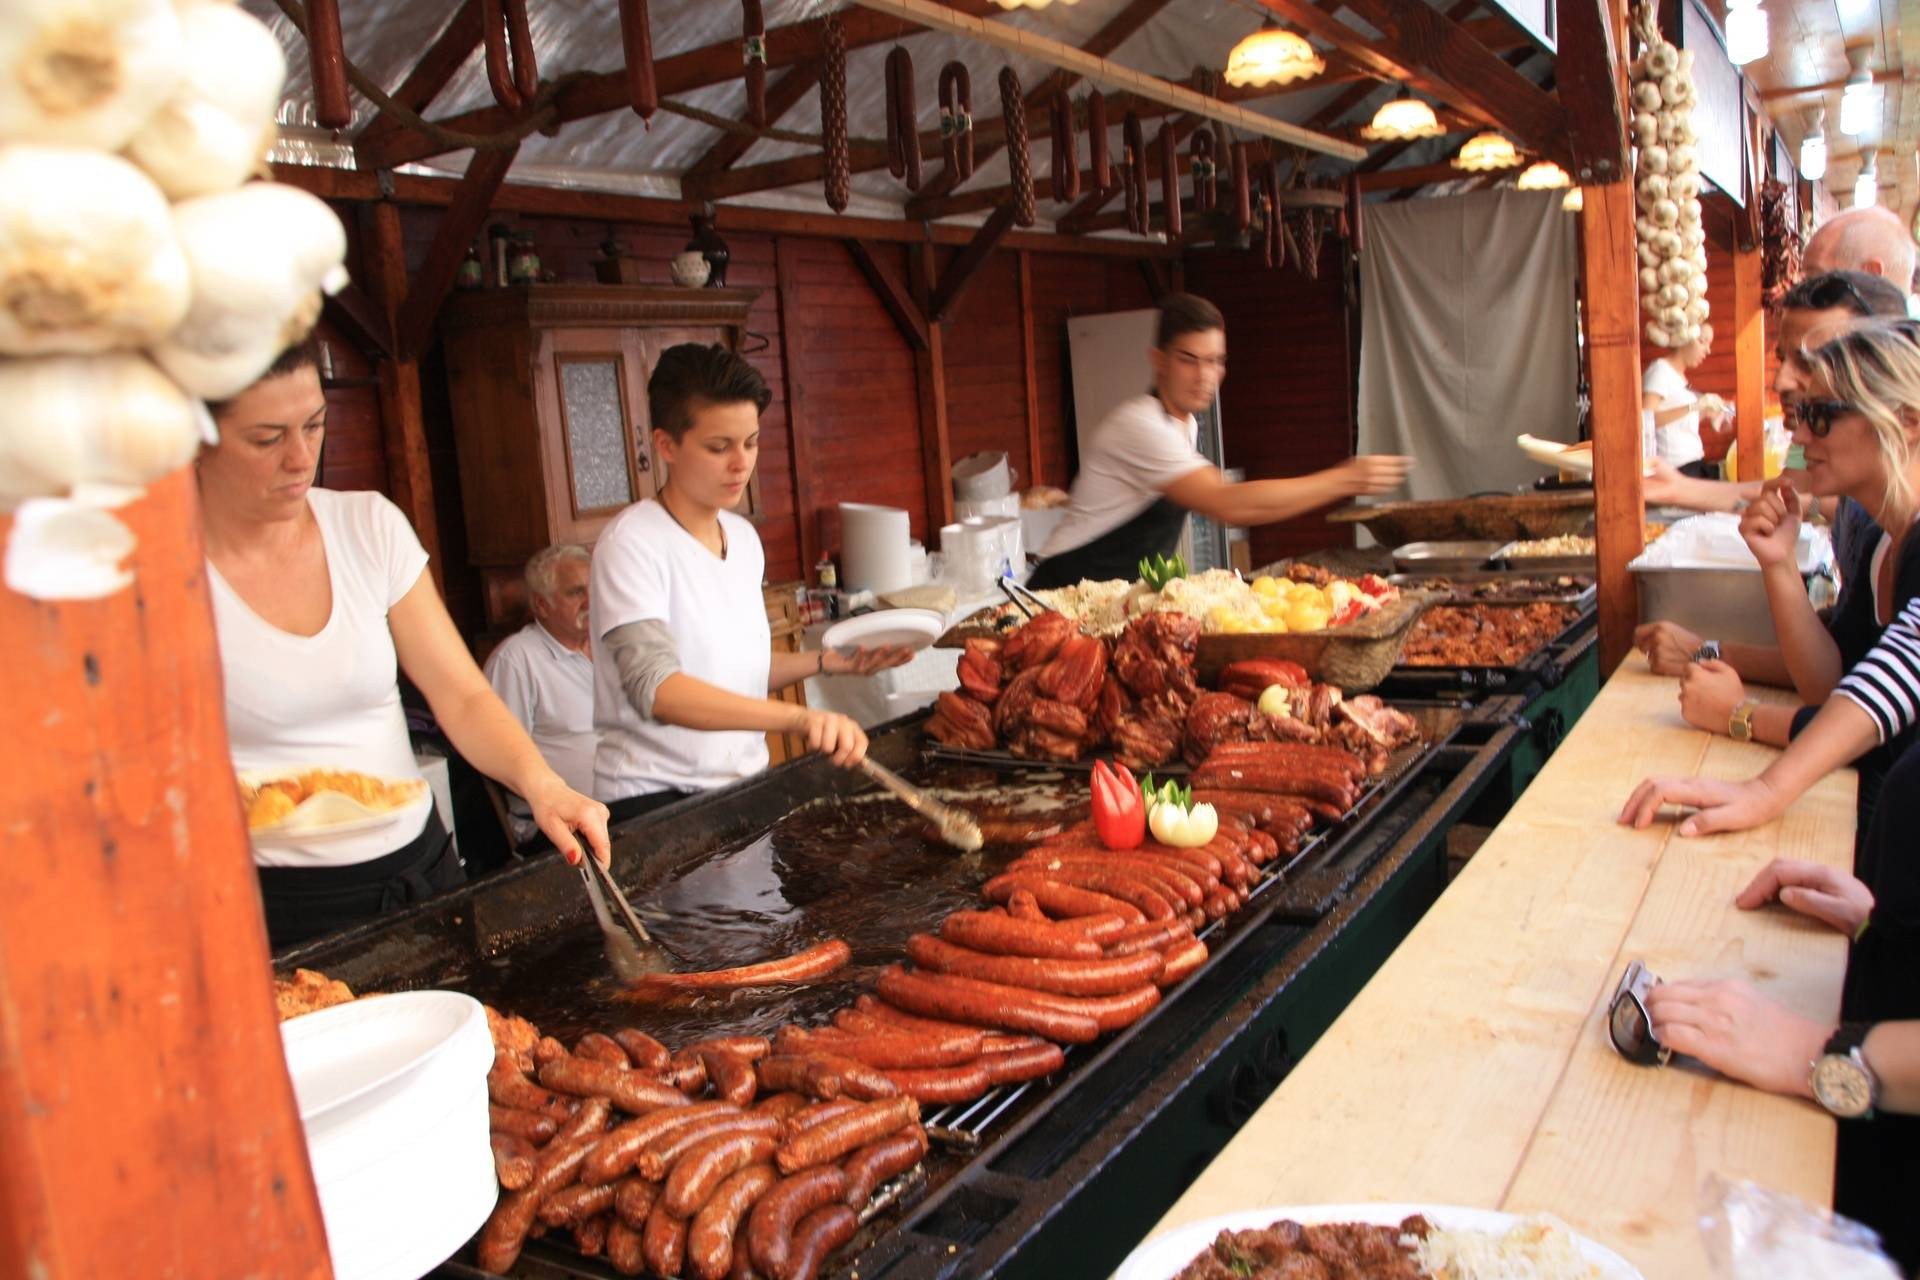 Food at Budapest festival